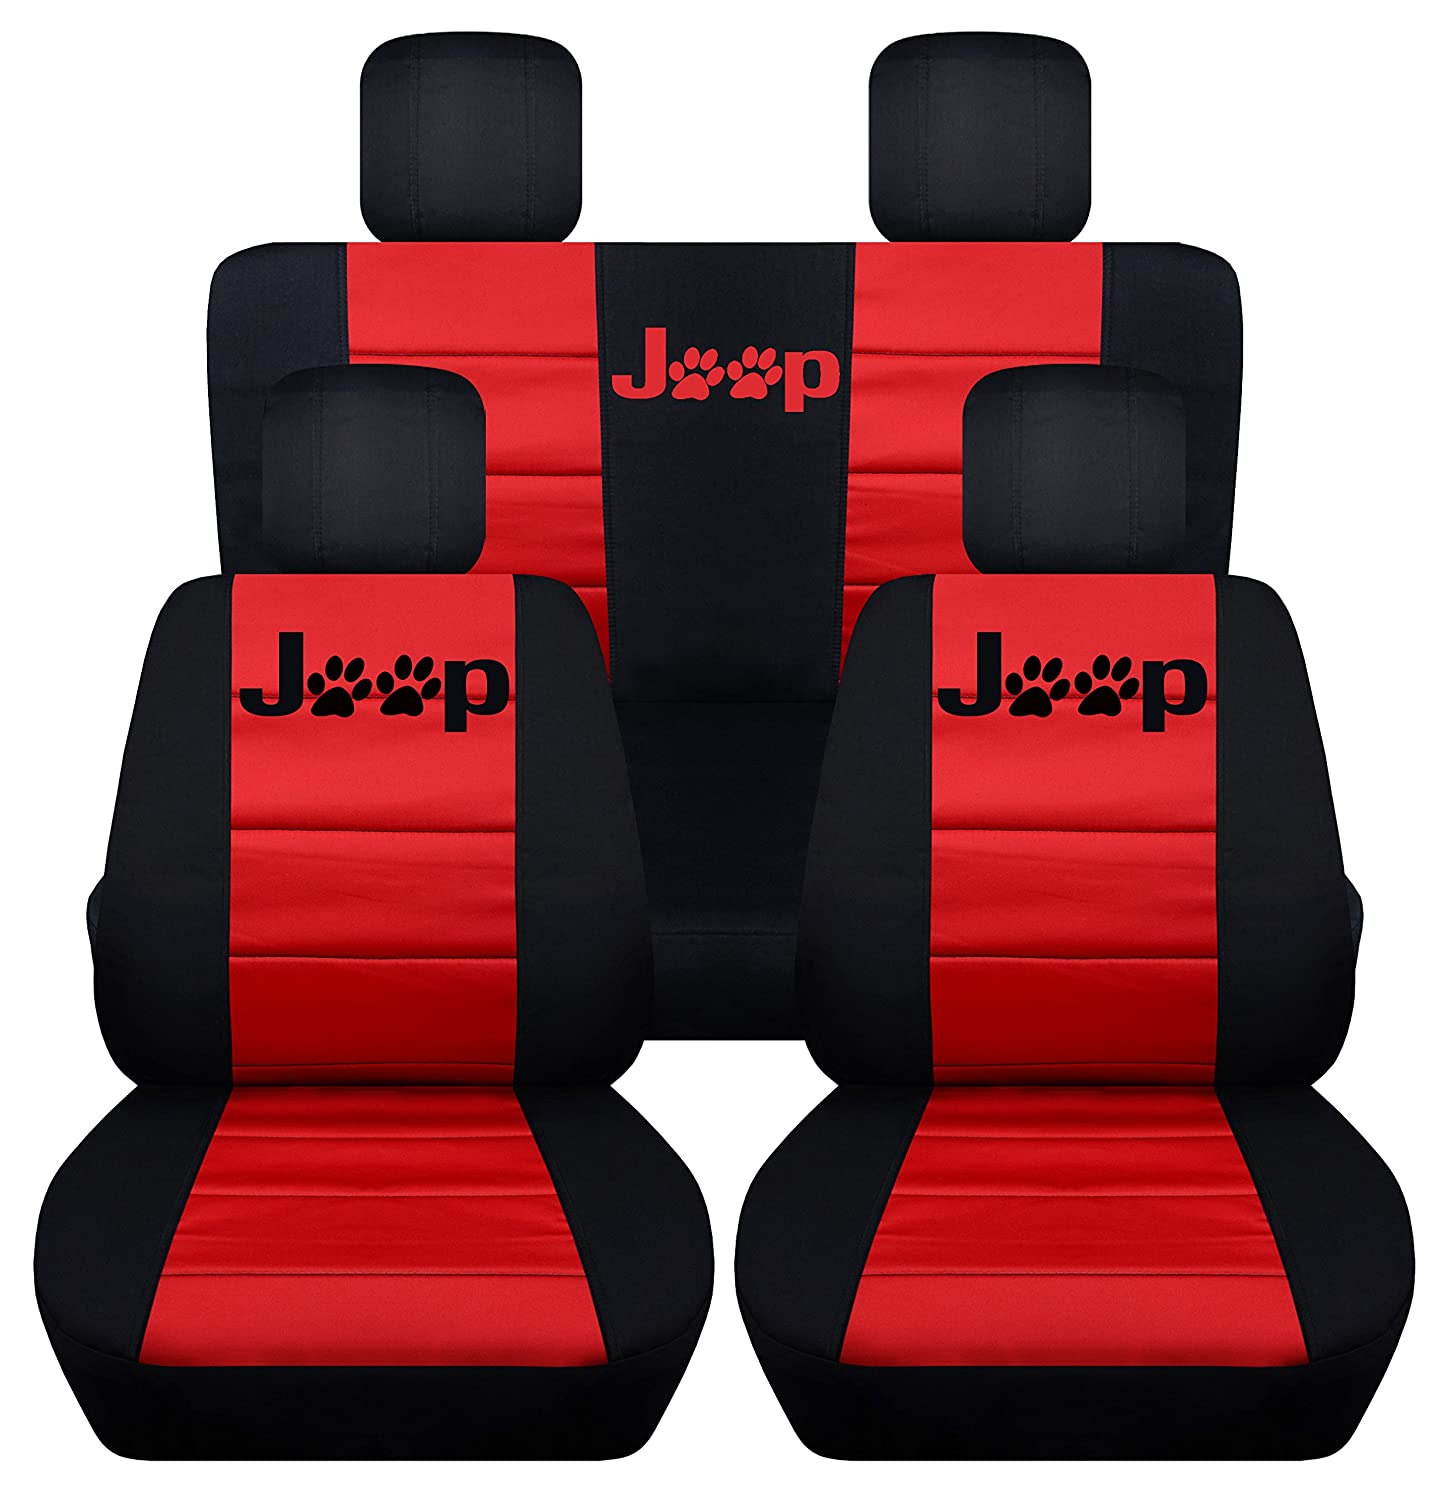 Black and Red Designcovers Fits 2013 to 2017 Jeep Wrangler 4 Door Paw Print Seat Covers 21 Color Options